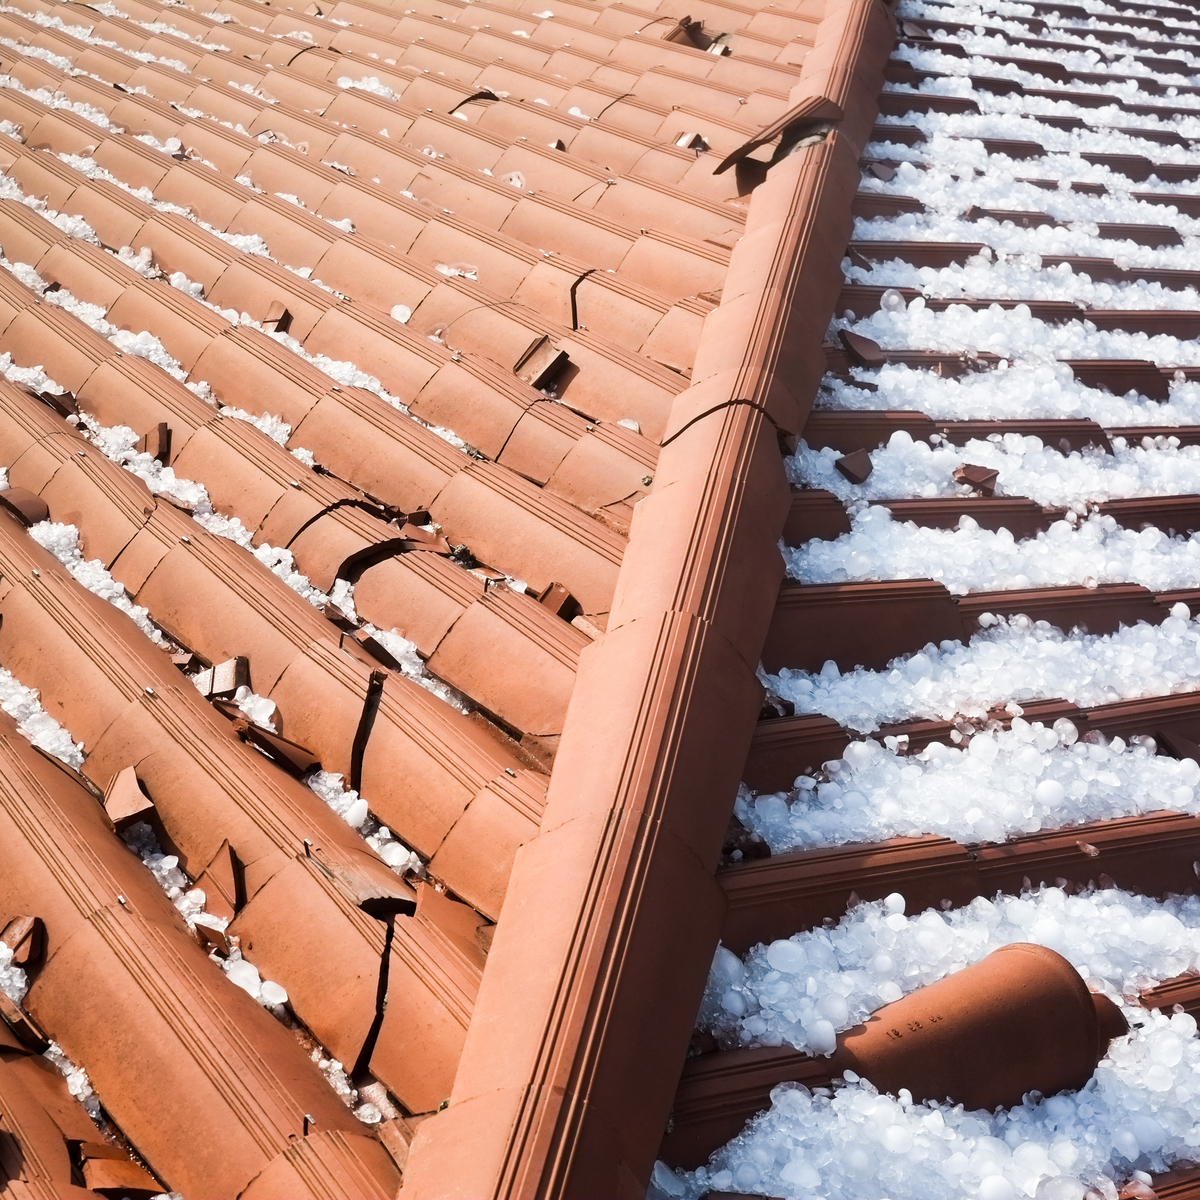 Atop of roof damage, hail can bring leak damage into your home by melting into dents and cracks on your rooftop.